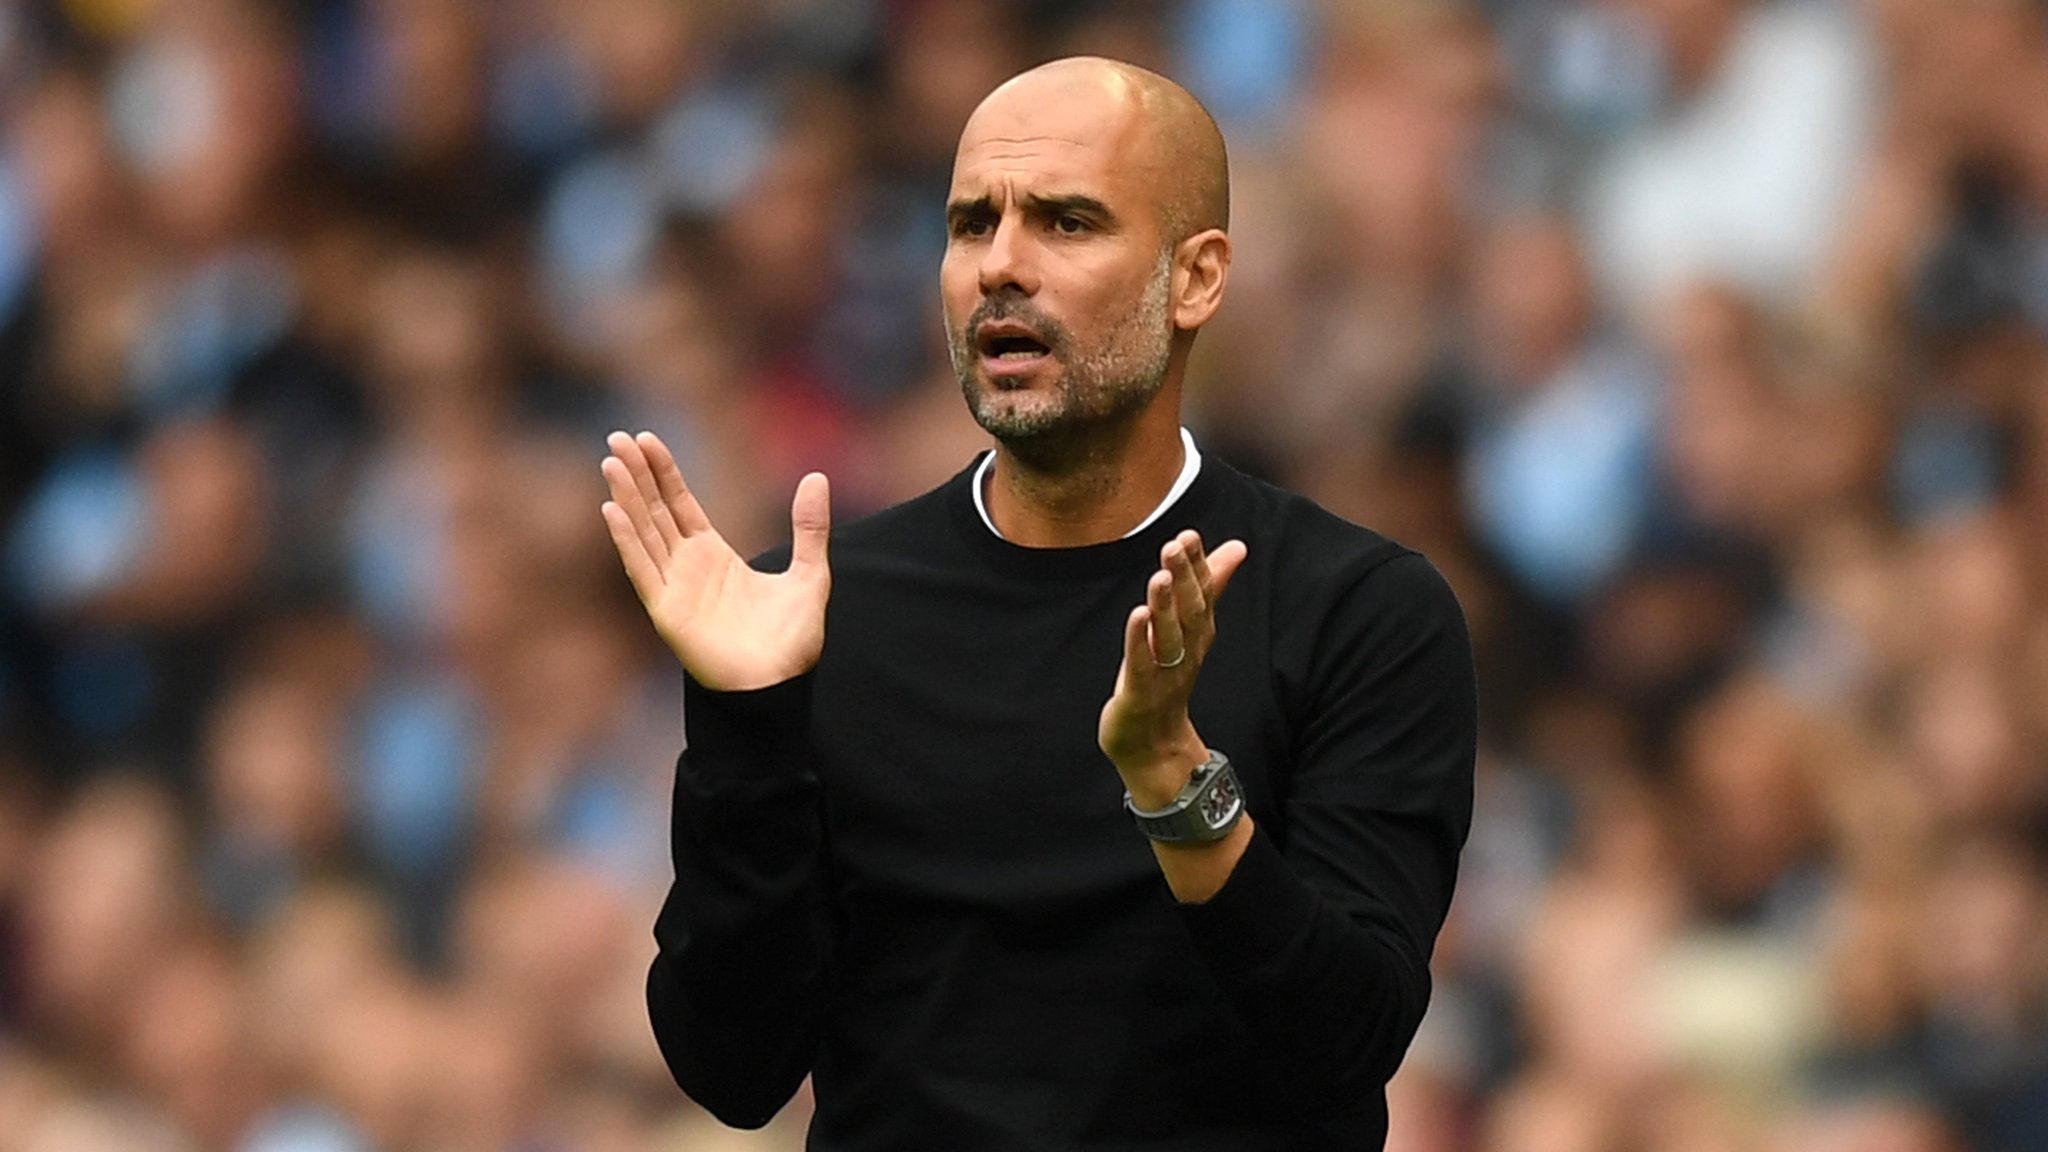 Man City documentary 'not disrespectful' - Guardiola responds to Mourinho